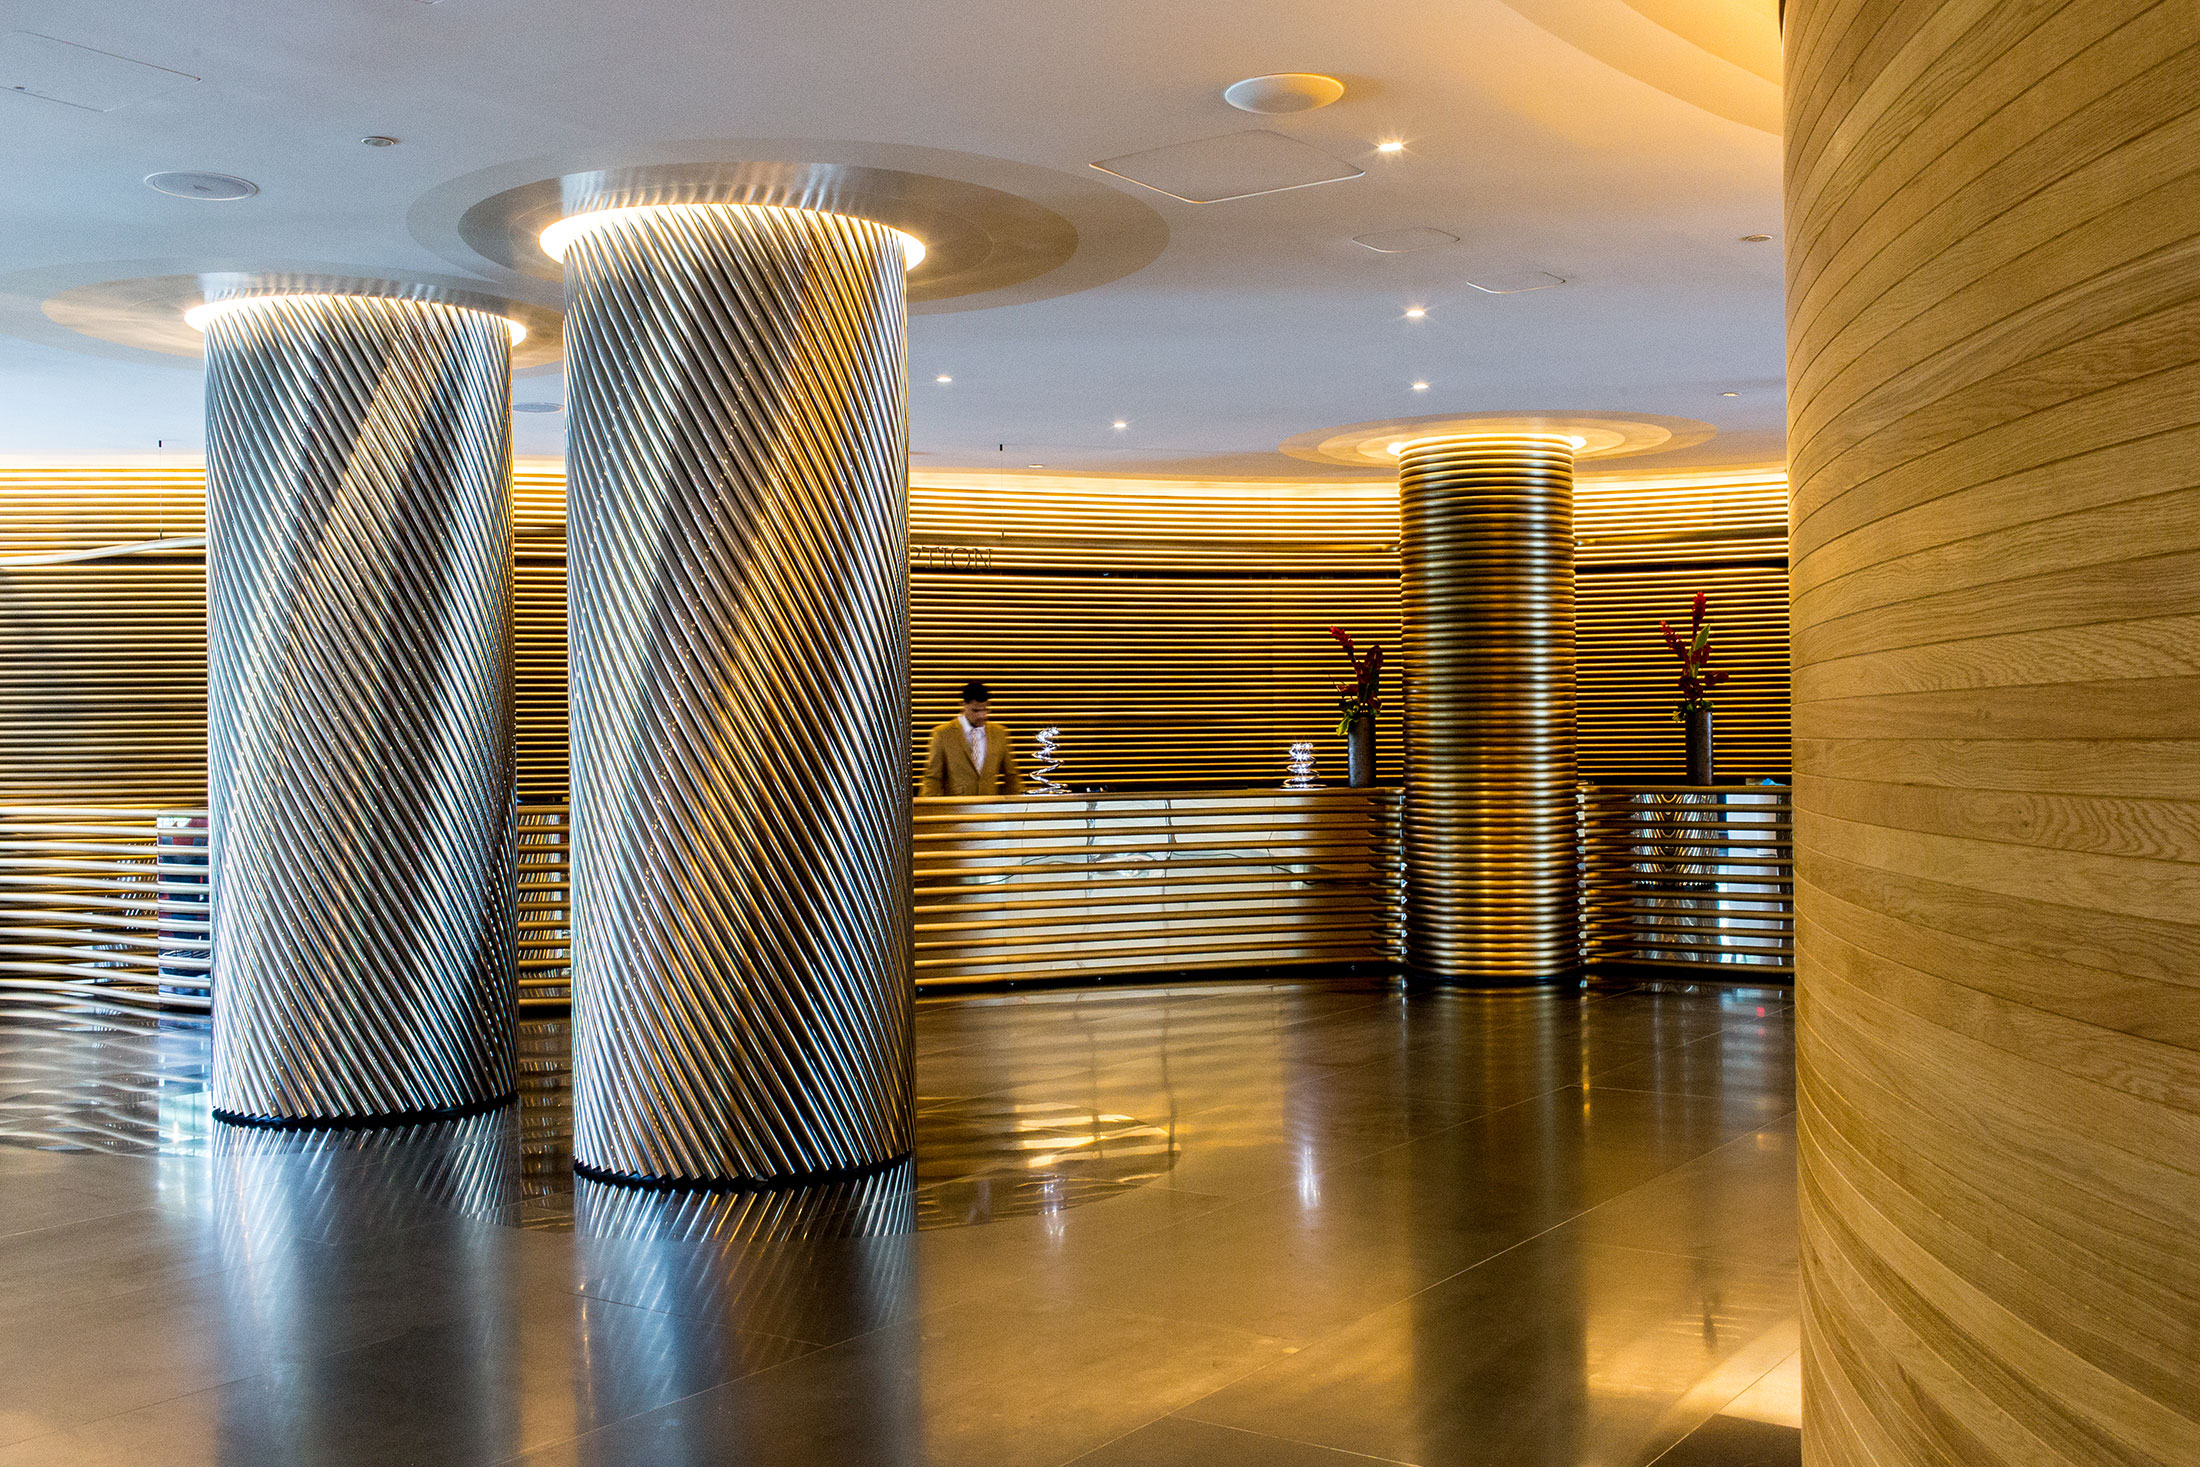 Stainless steel pillars in the lobby of the Watergate Hotel. (Photo:Justin Tsucalas/Surface)